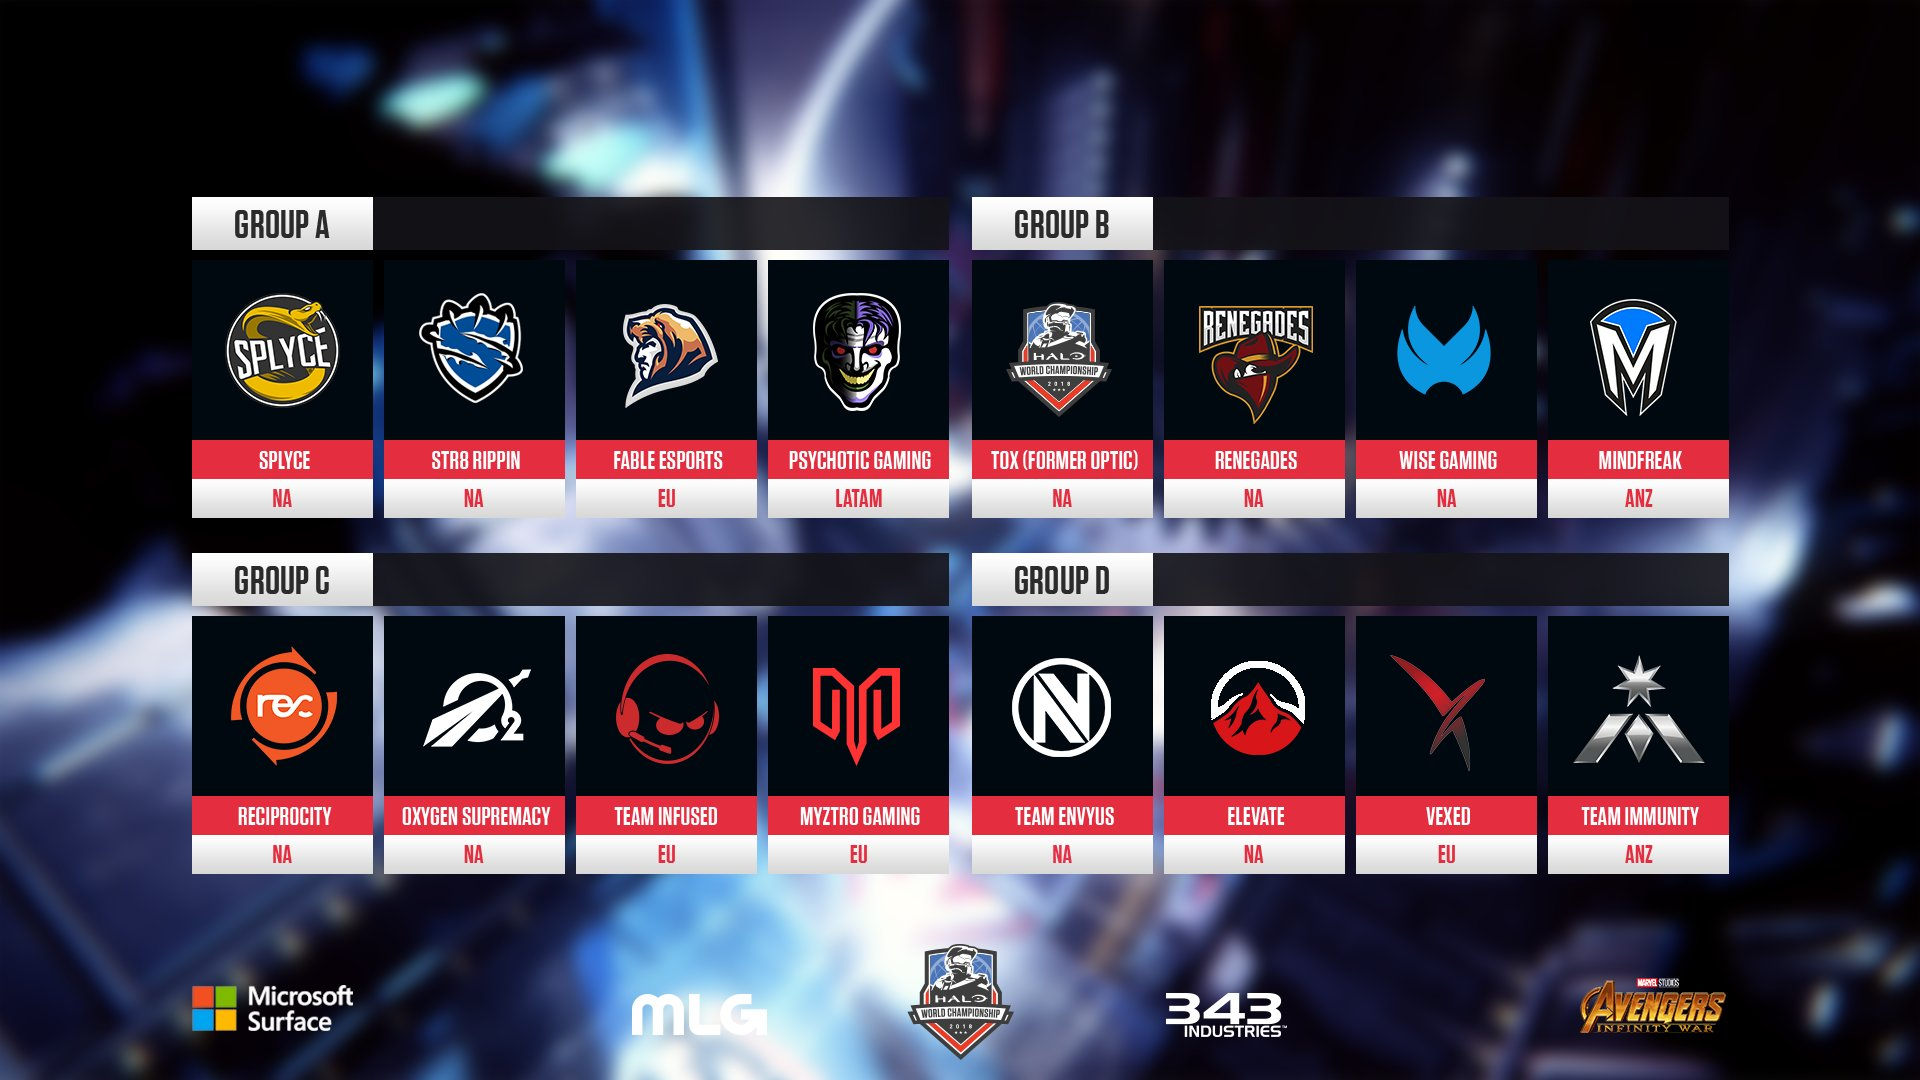 Halo global championship prizes for adults